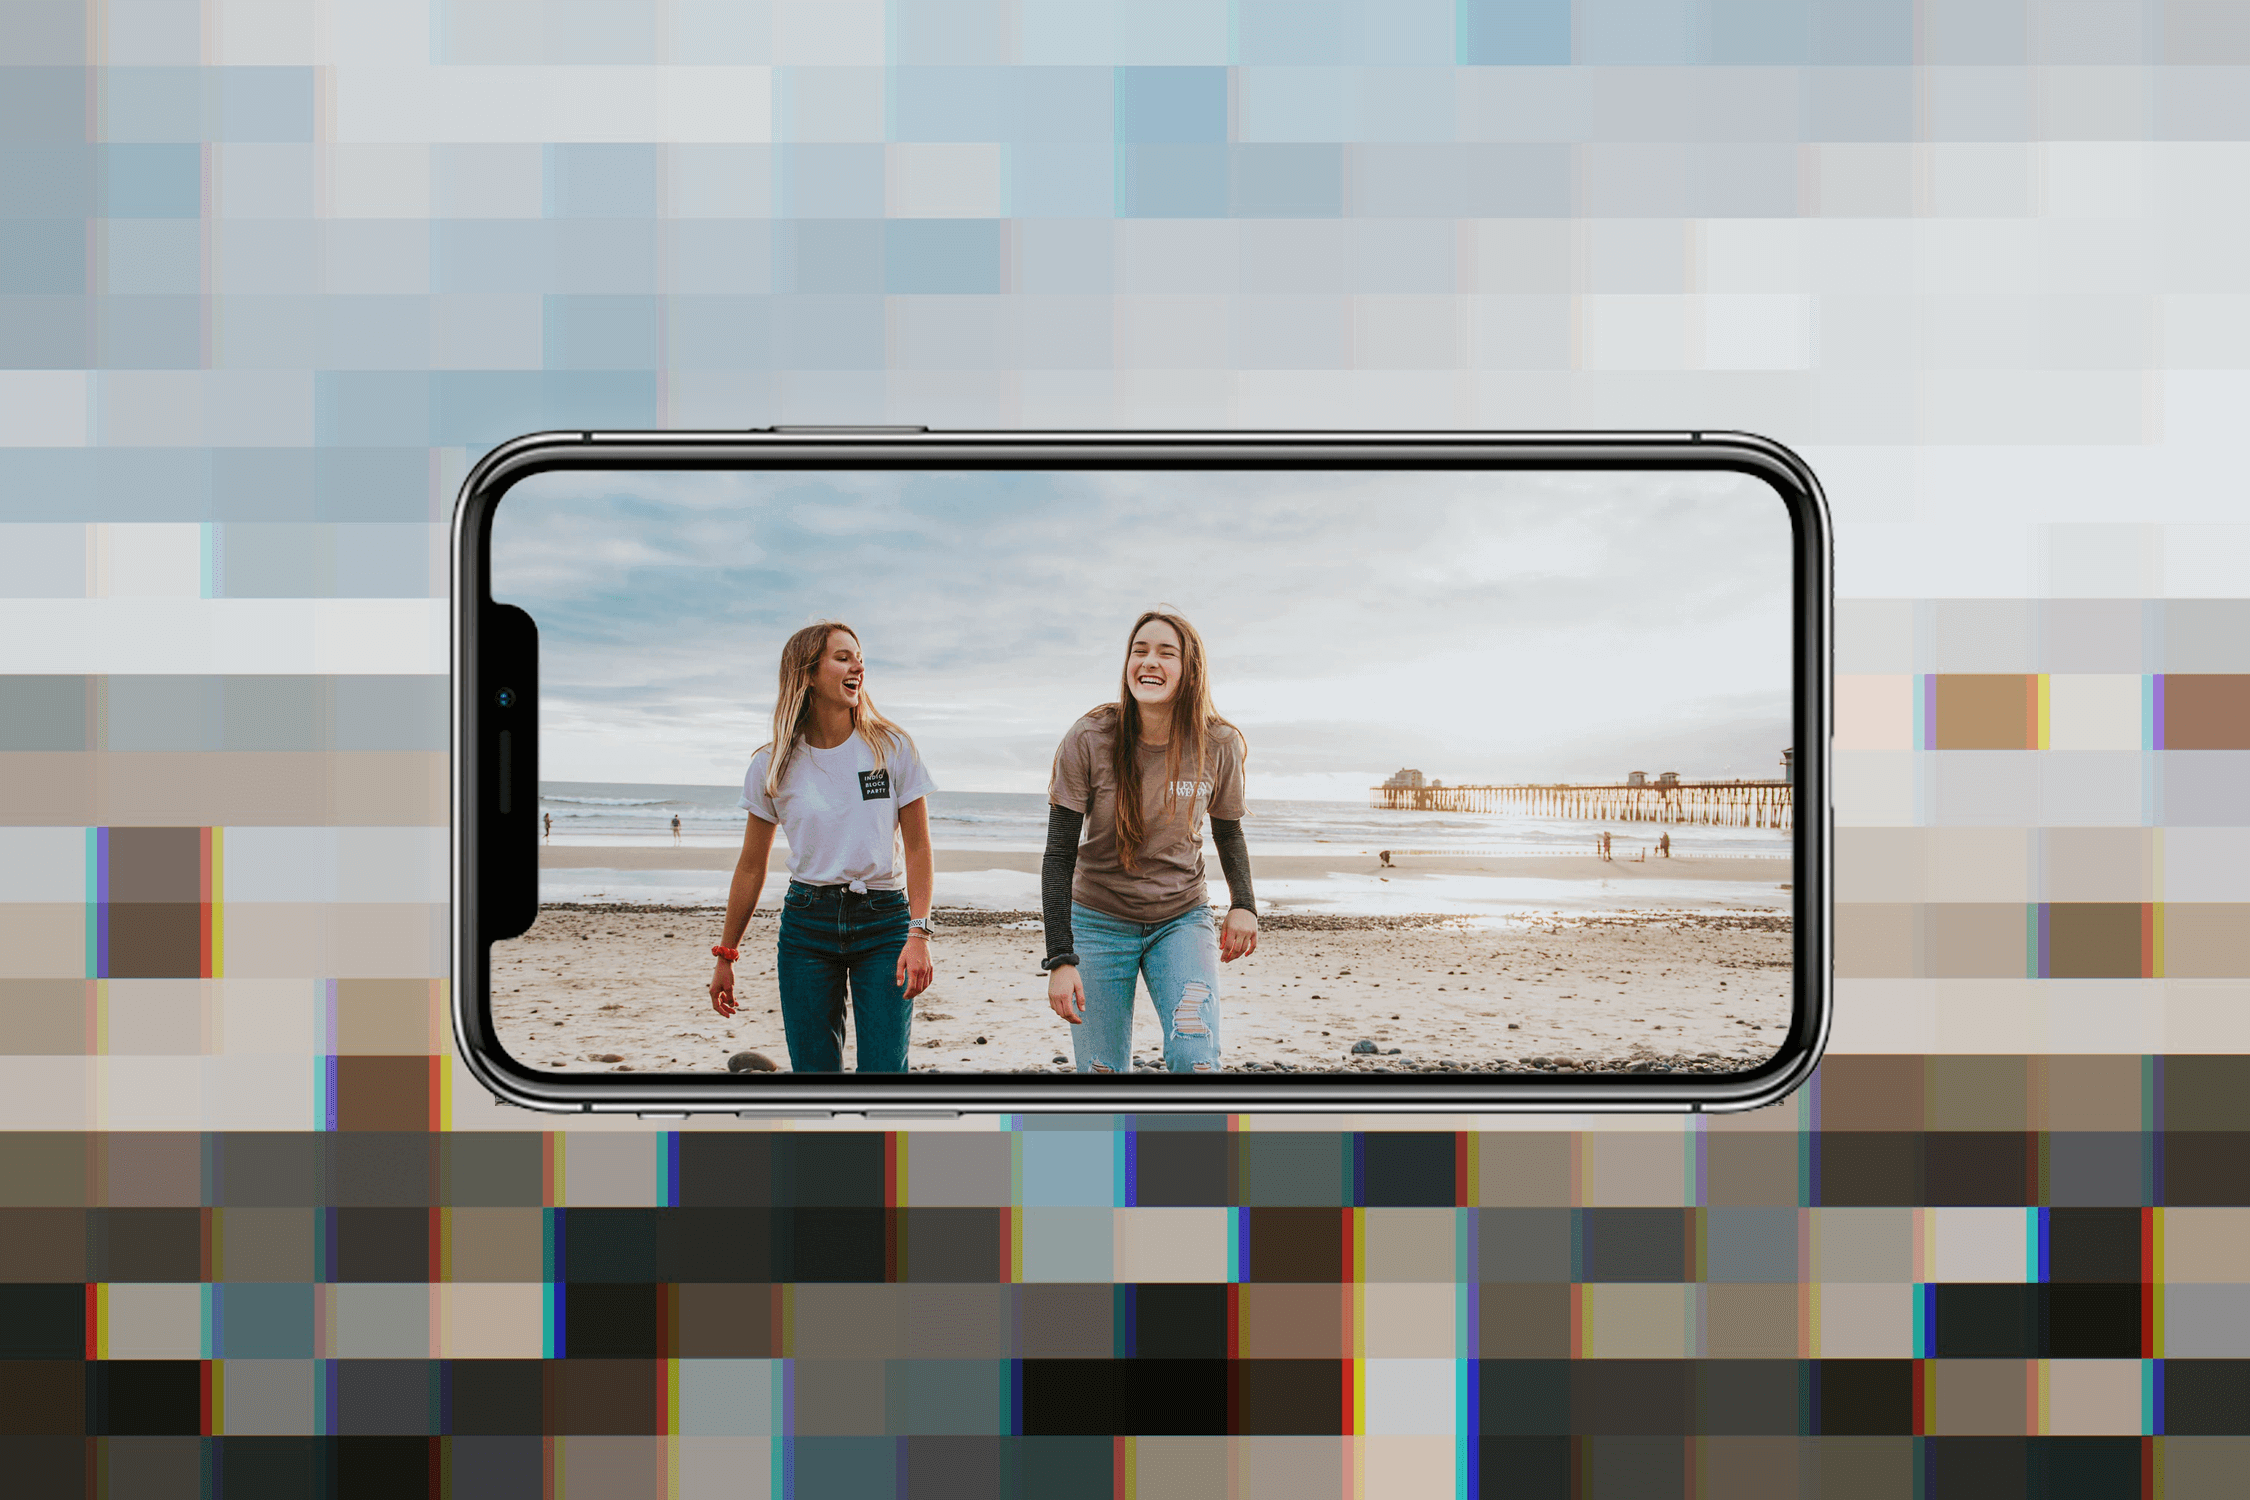 Instagram video formats and how to improve the quality of your videos 🎥